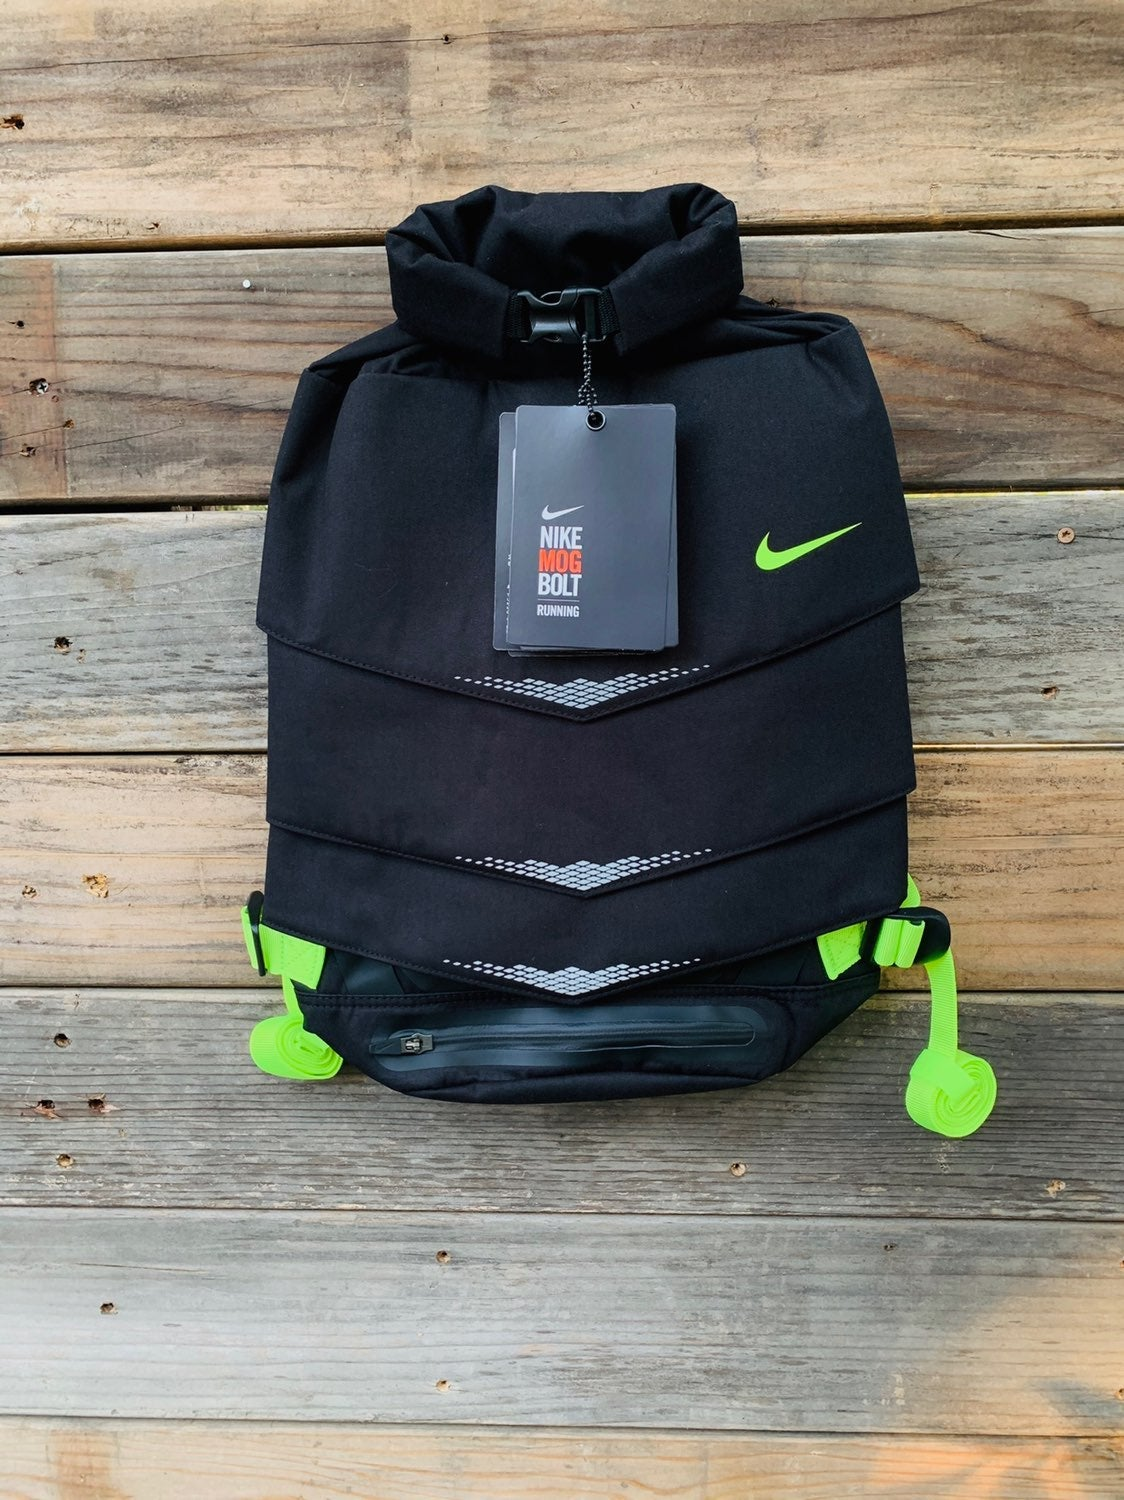 Nike back pack (mog bolt)